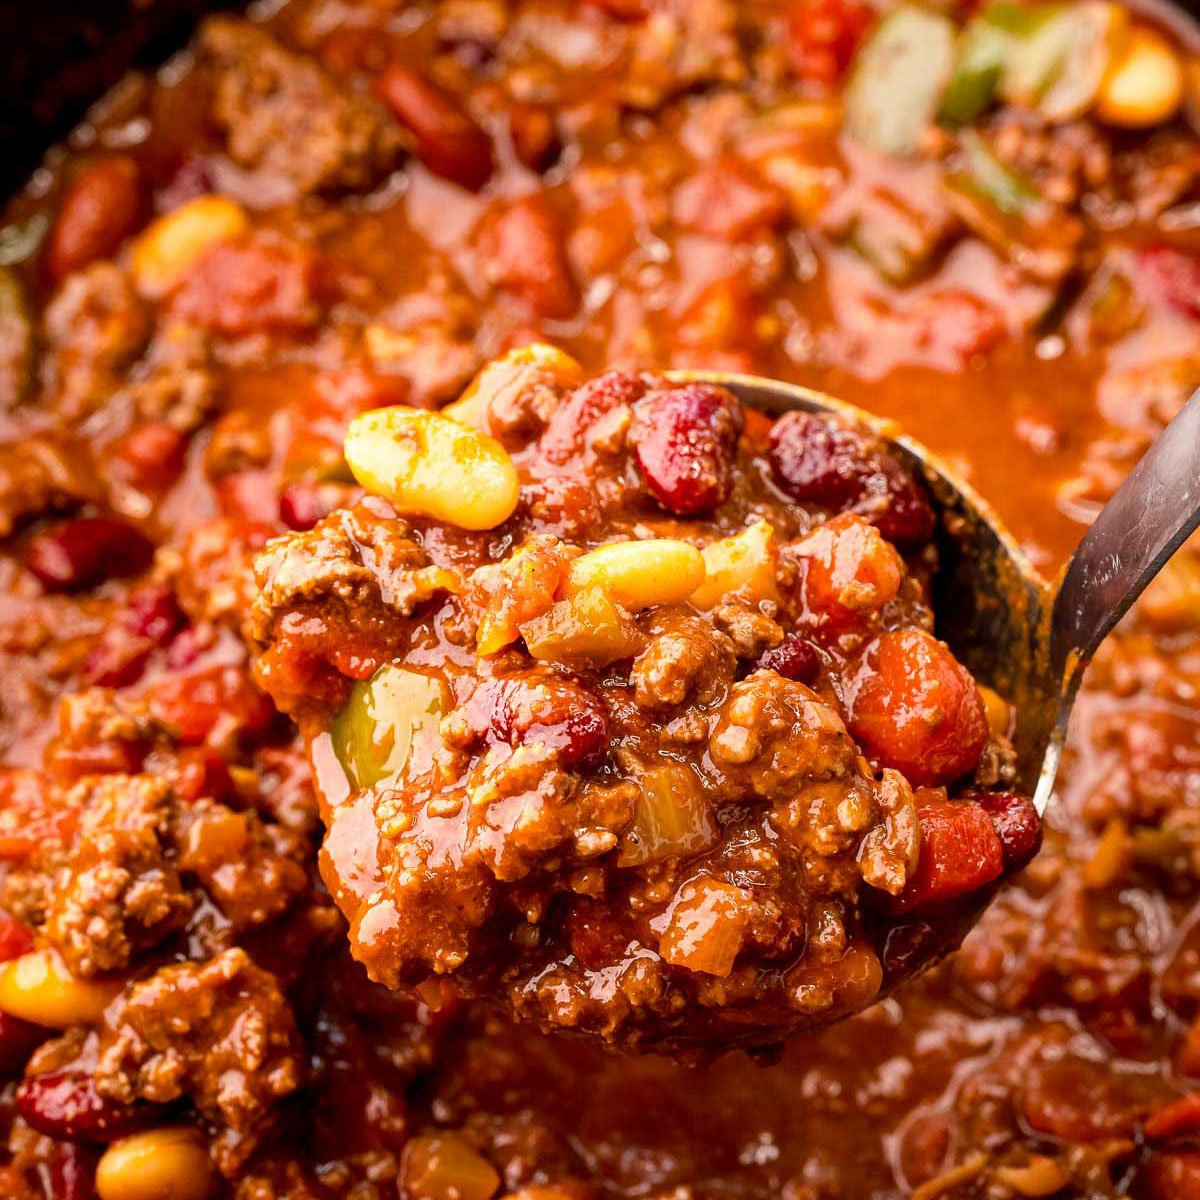 ladle scooping chili from a slow cooker